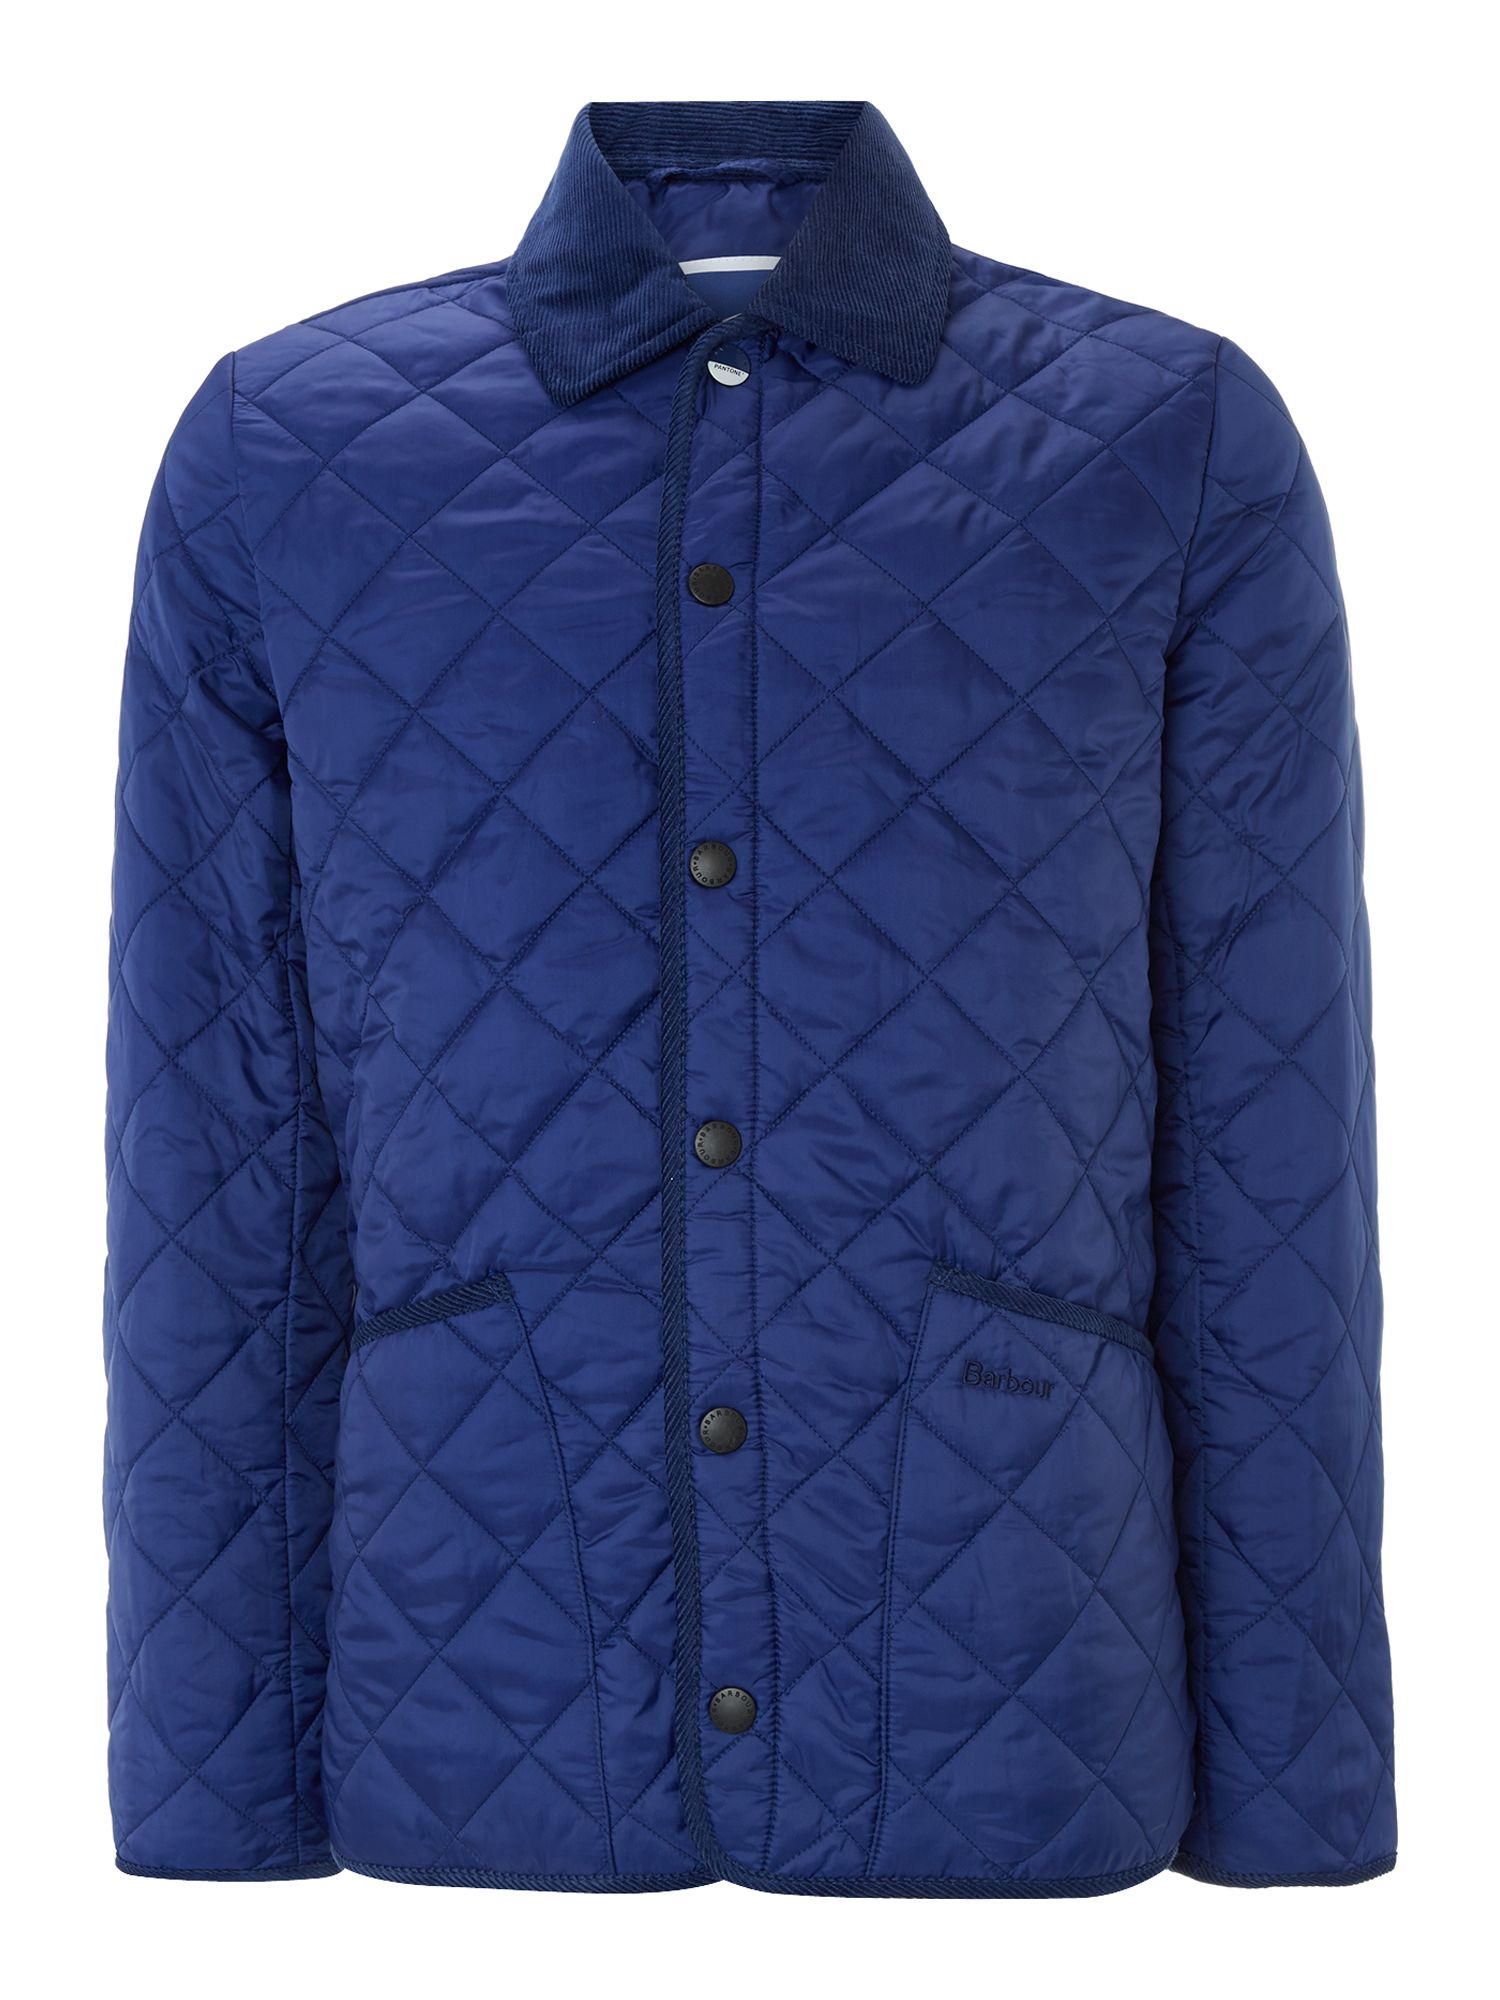 Pantone tony heritage quilted padded jacket